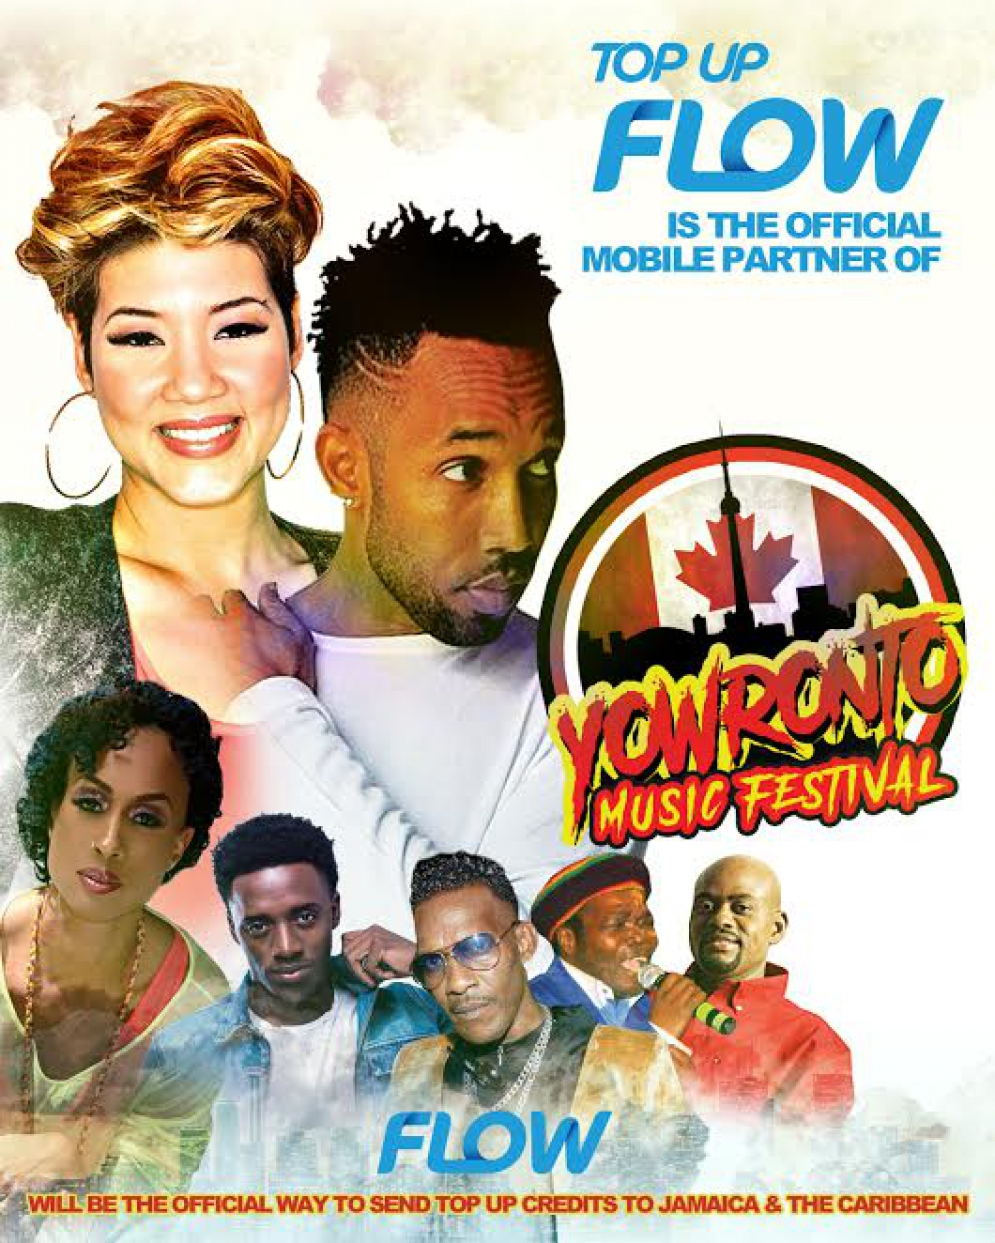 Flow Connects With The Caribbean Diaspora At The @YOWronto Music #Festival in Canada  - Win Free Tickets @matrixthinker #tessannechin